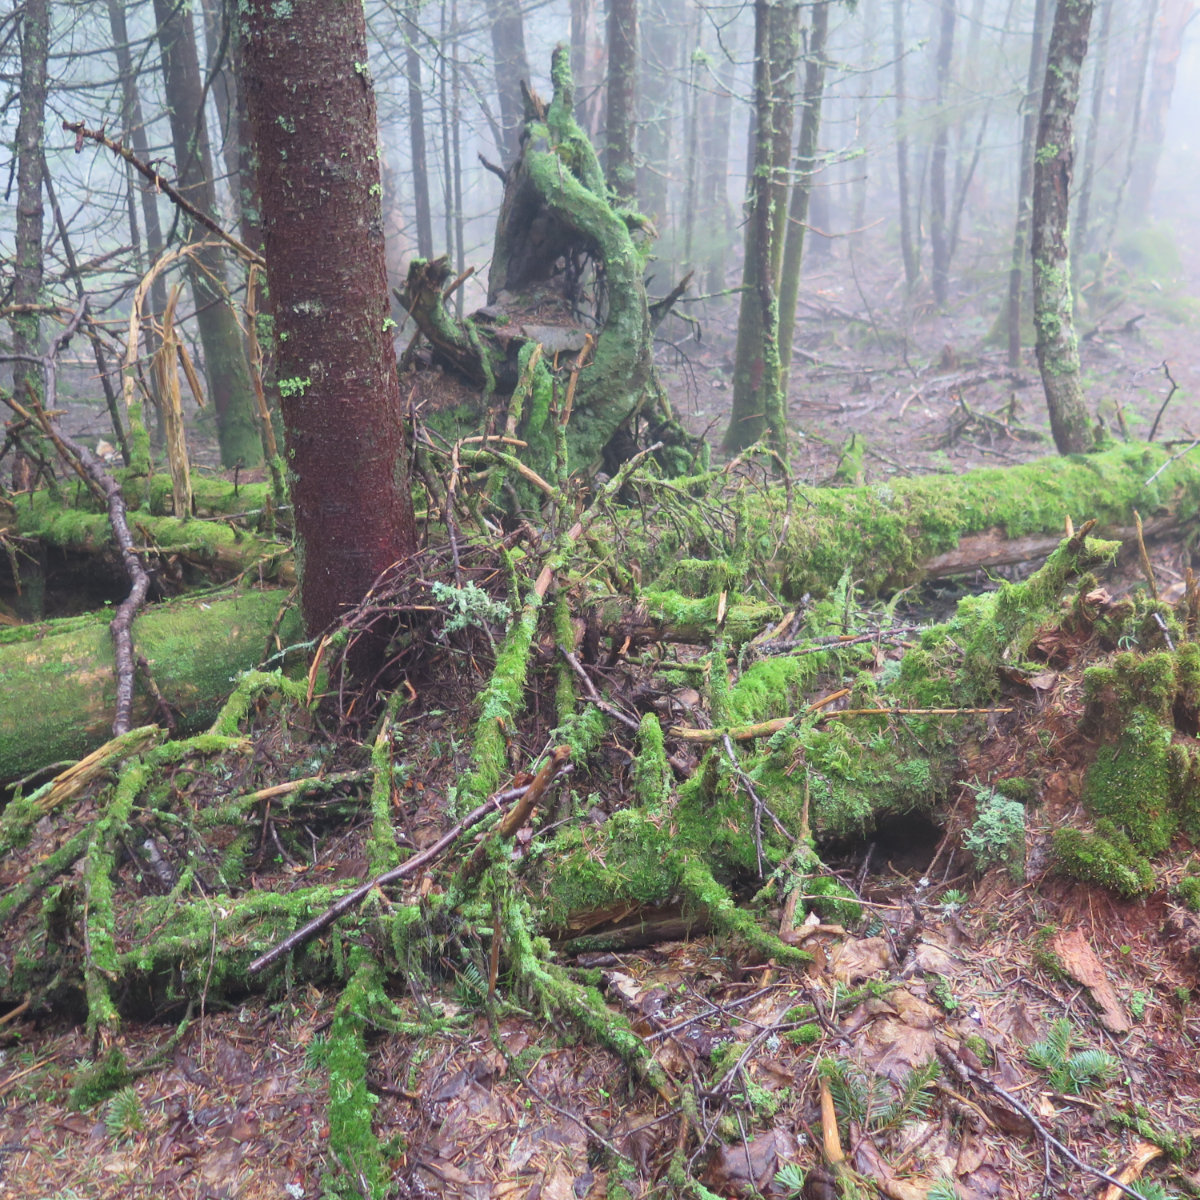 Moss covered tree trunks at trailside on Sandwich Mountain, White Mountain National Forest, New Hampshire.